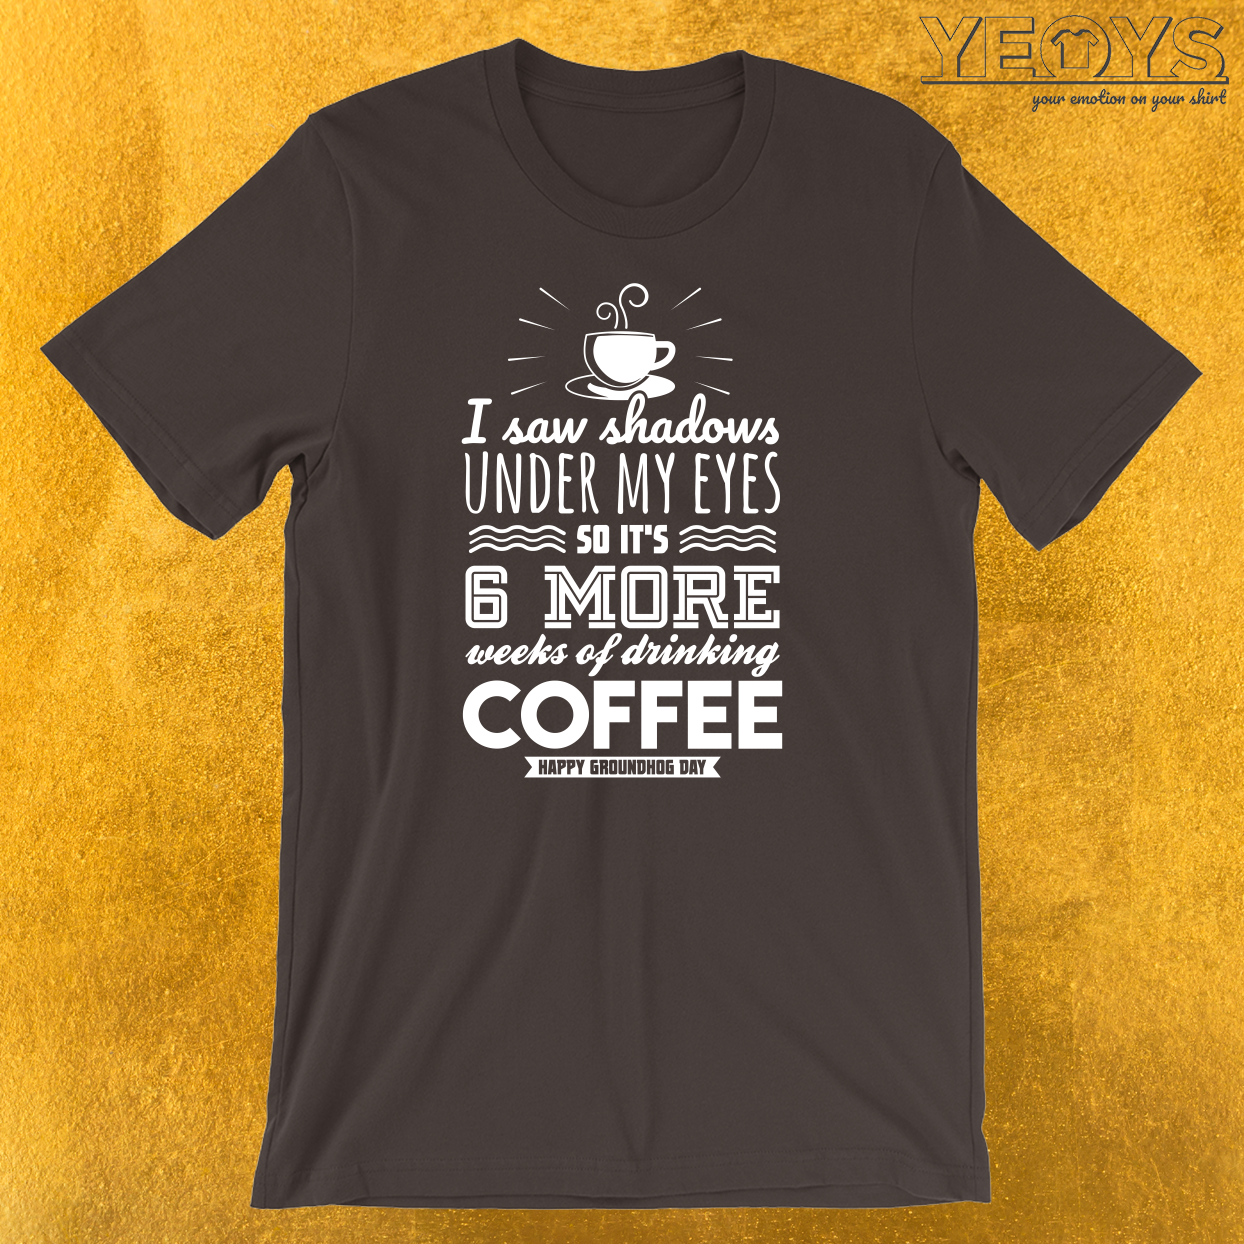 6 More Weeks Of Drinking Coffee T-Shirt